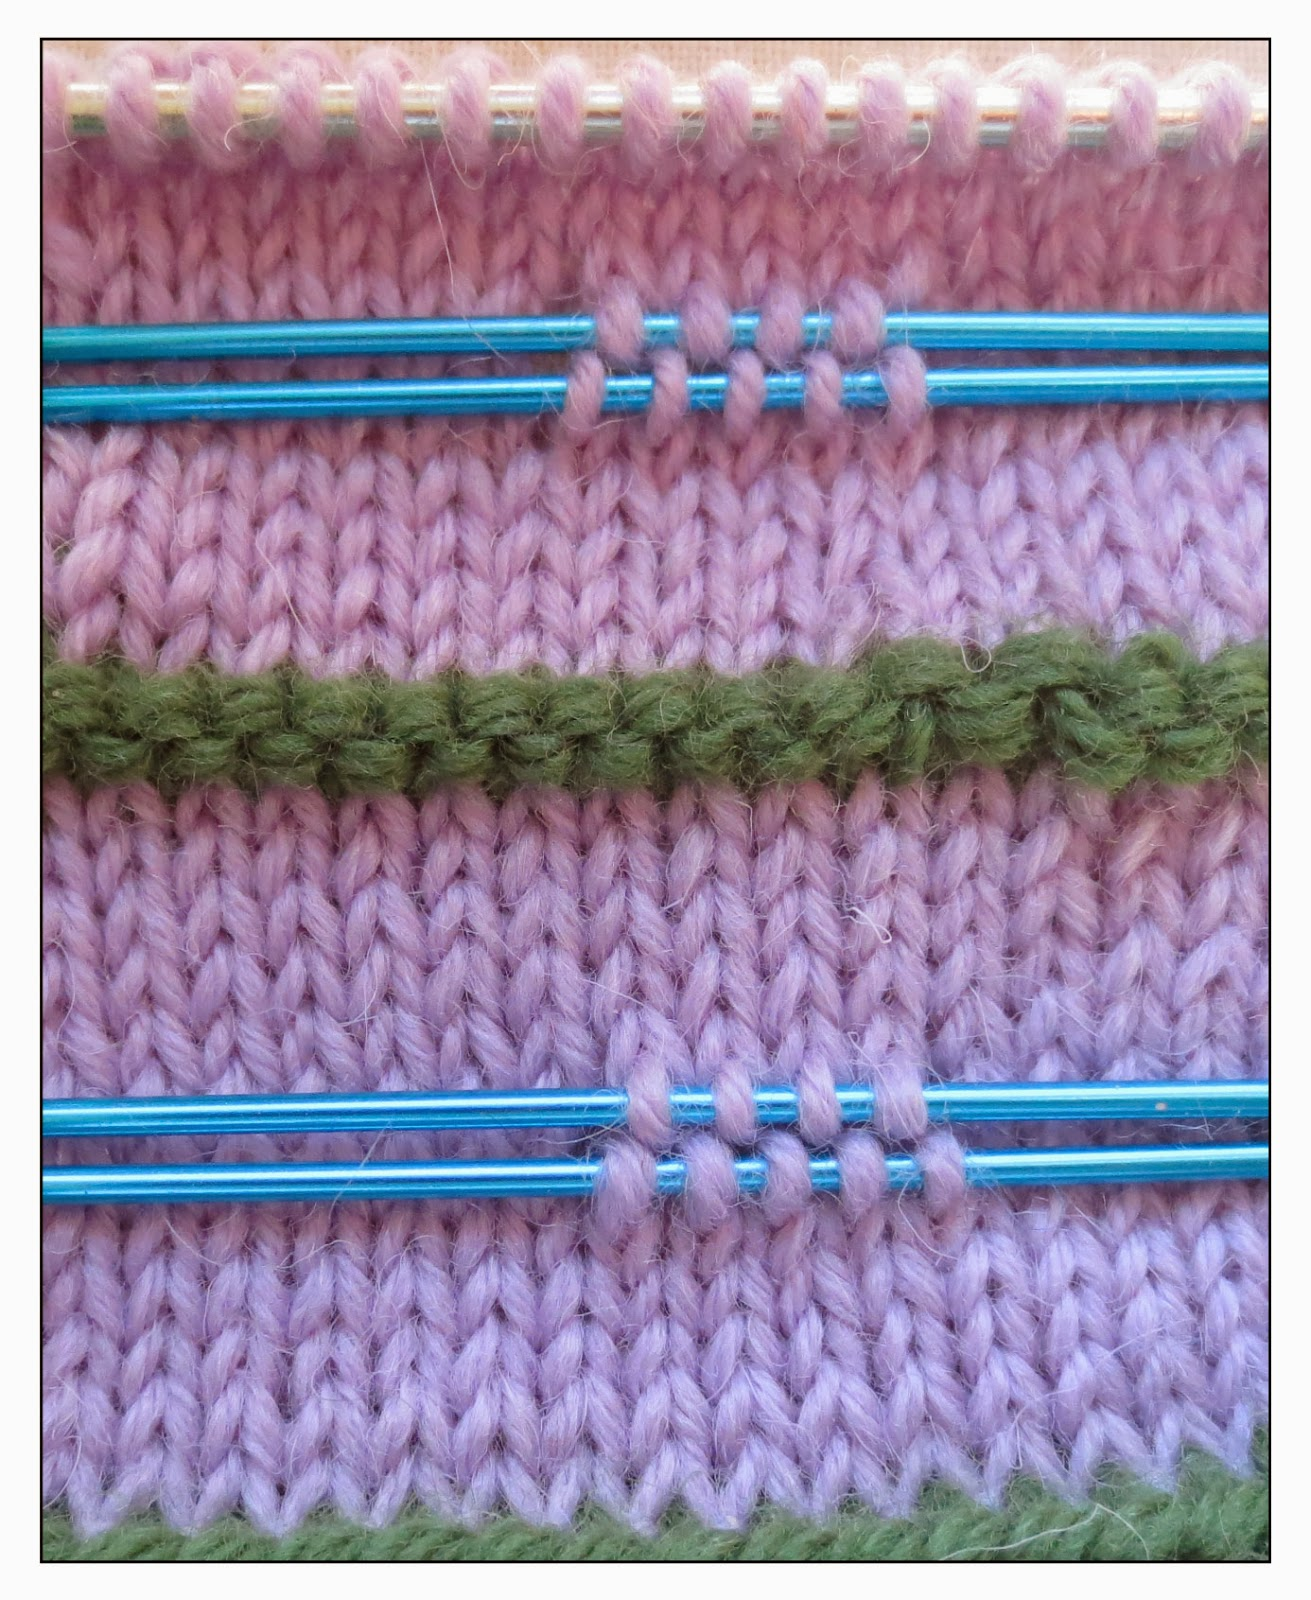 How Do You Graft Knitting Stitches Together : TECHknitting: Steeks, beta version, part 3: real world tricks and tips